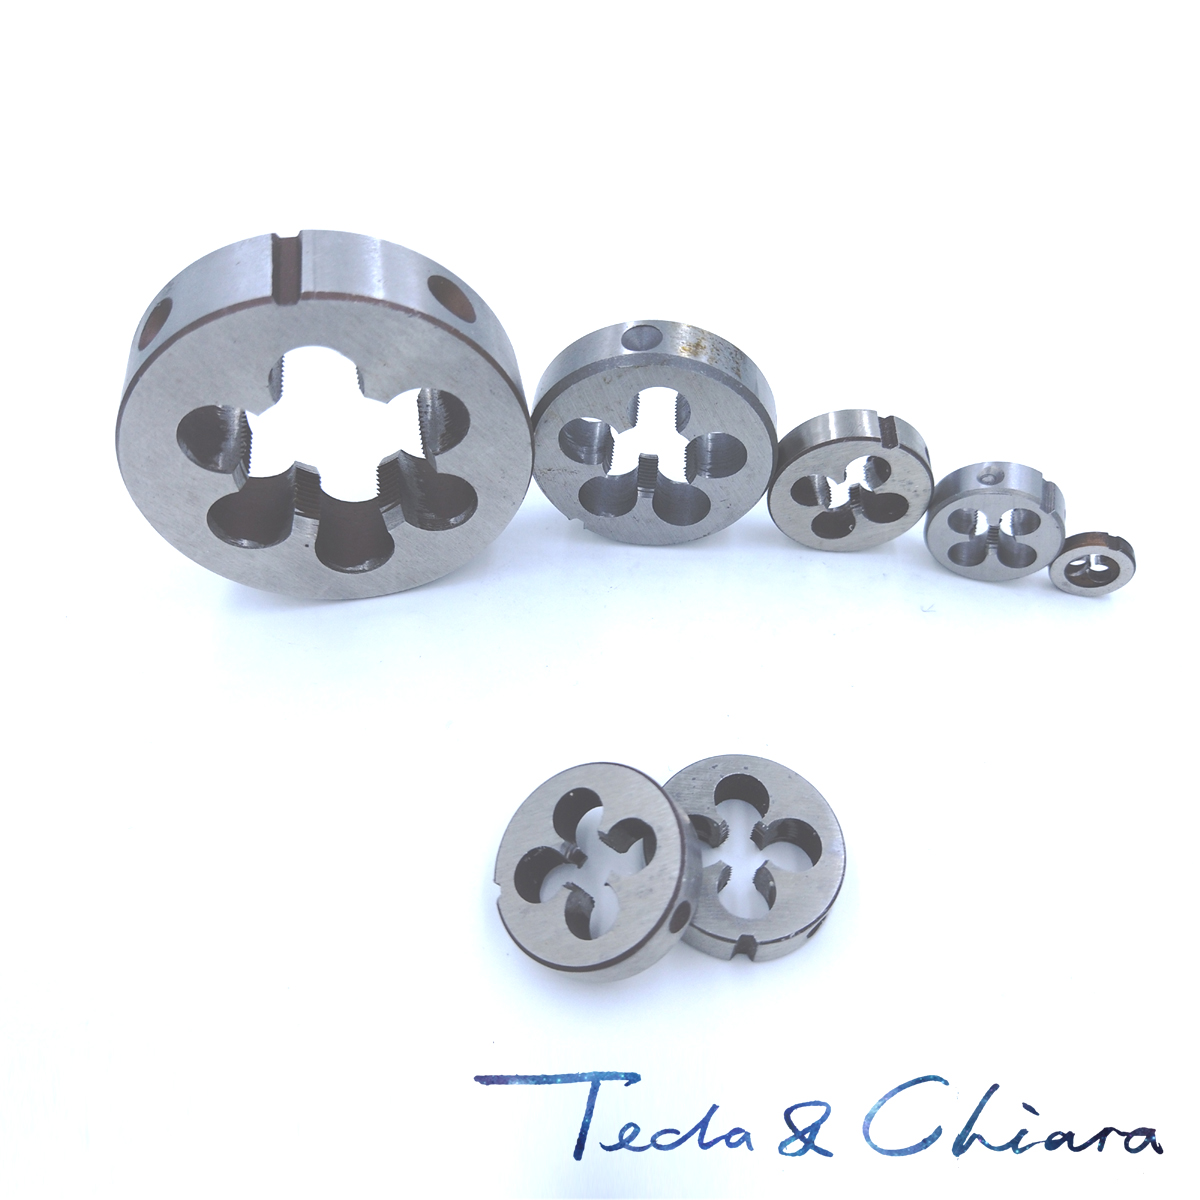 1Pc 14mm 14 X 1 1.0 Metric Die Left Hand M14 X 1mm 14*1L Pitch Threading Tools For Mold Machining Free Shipping